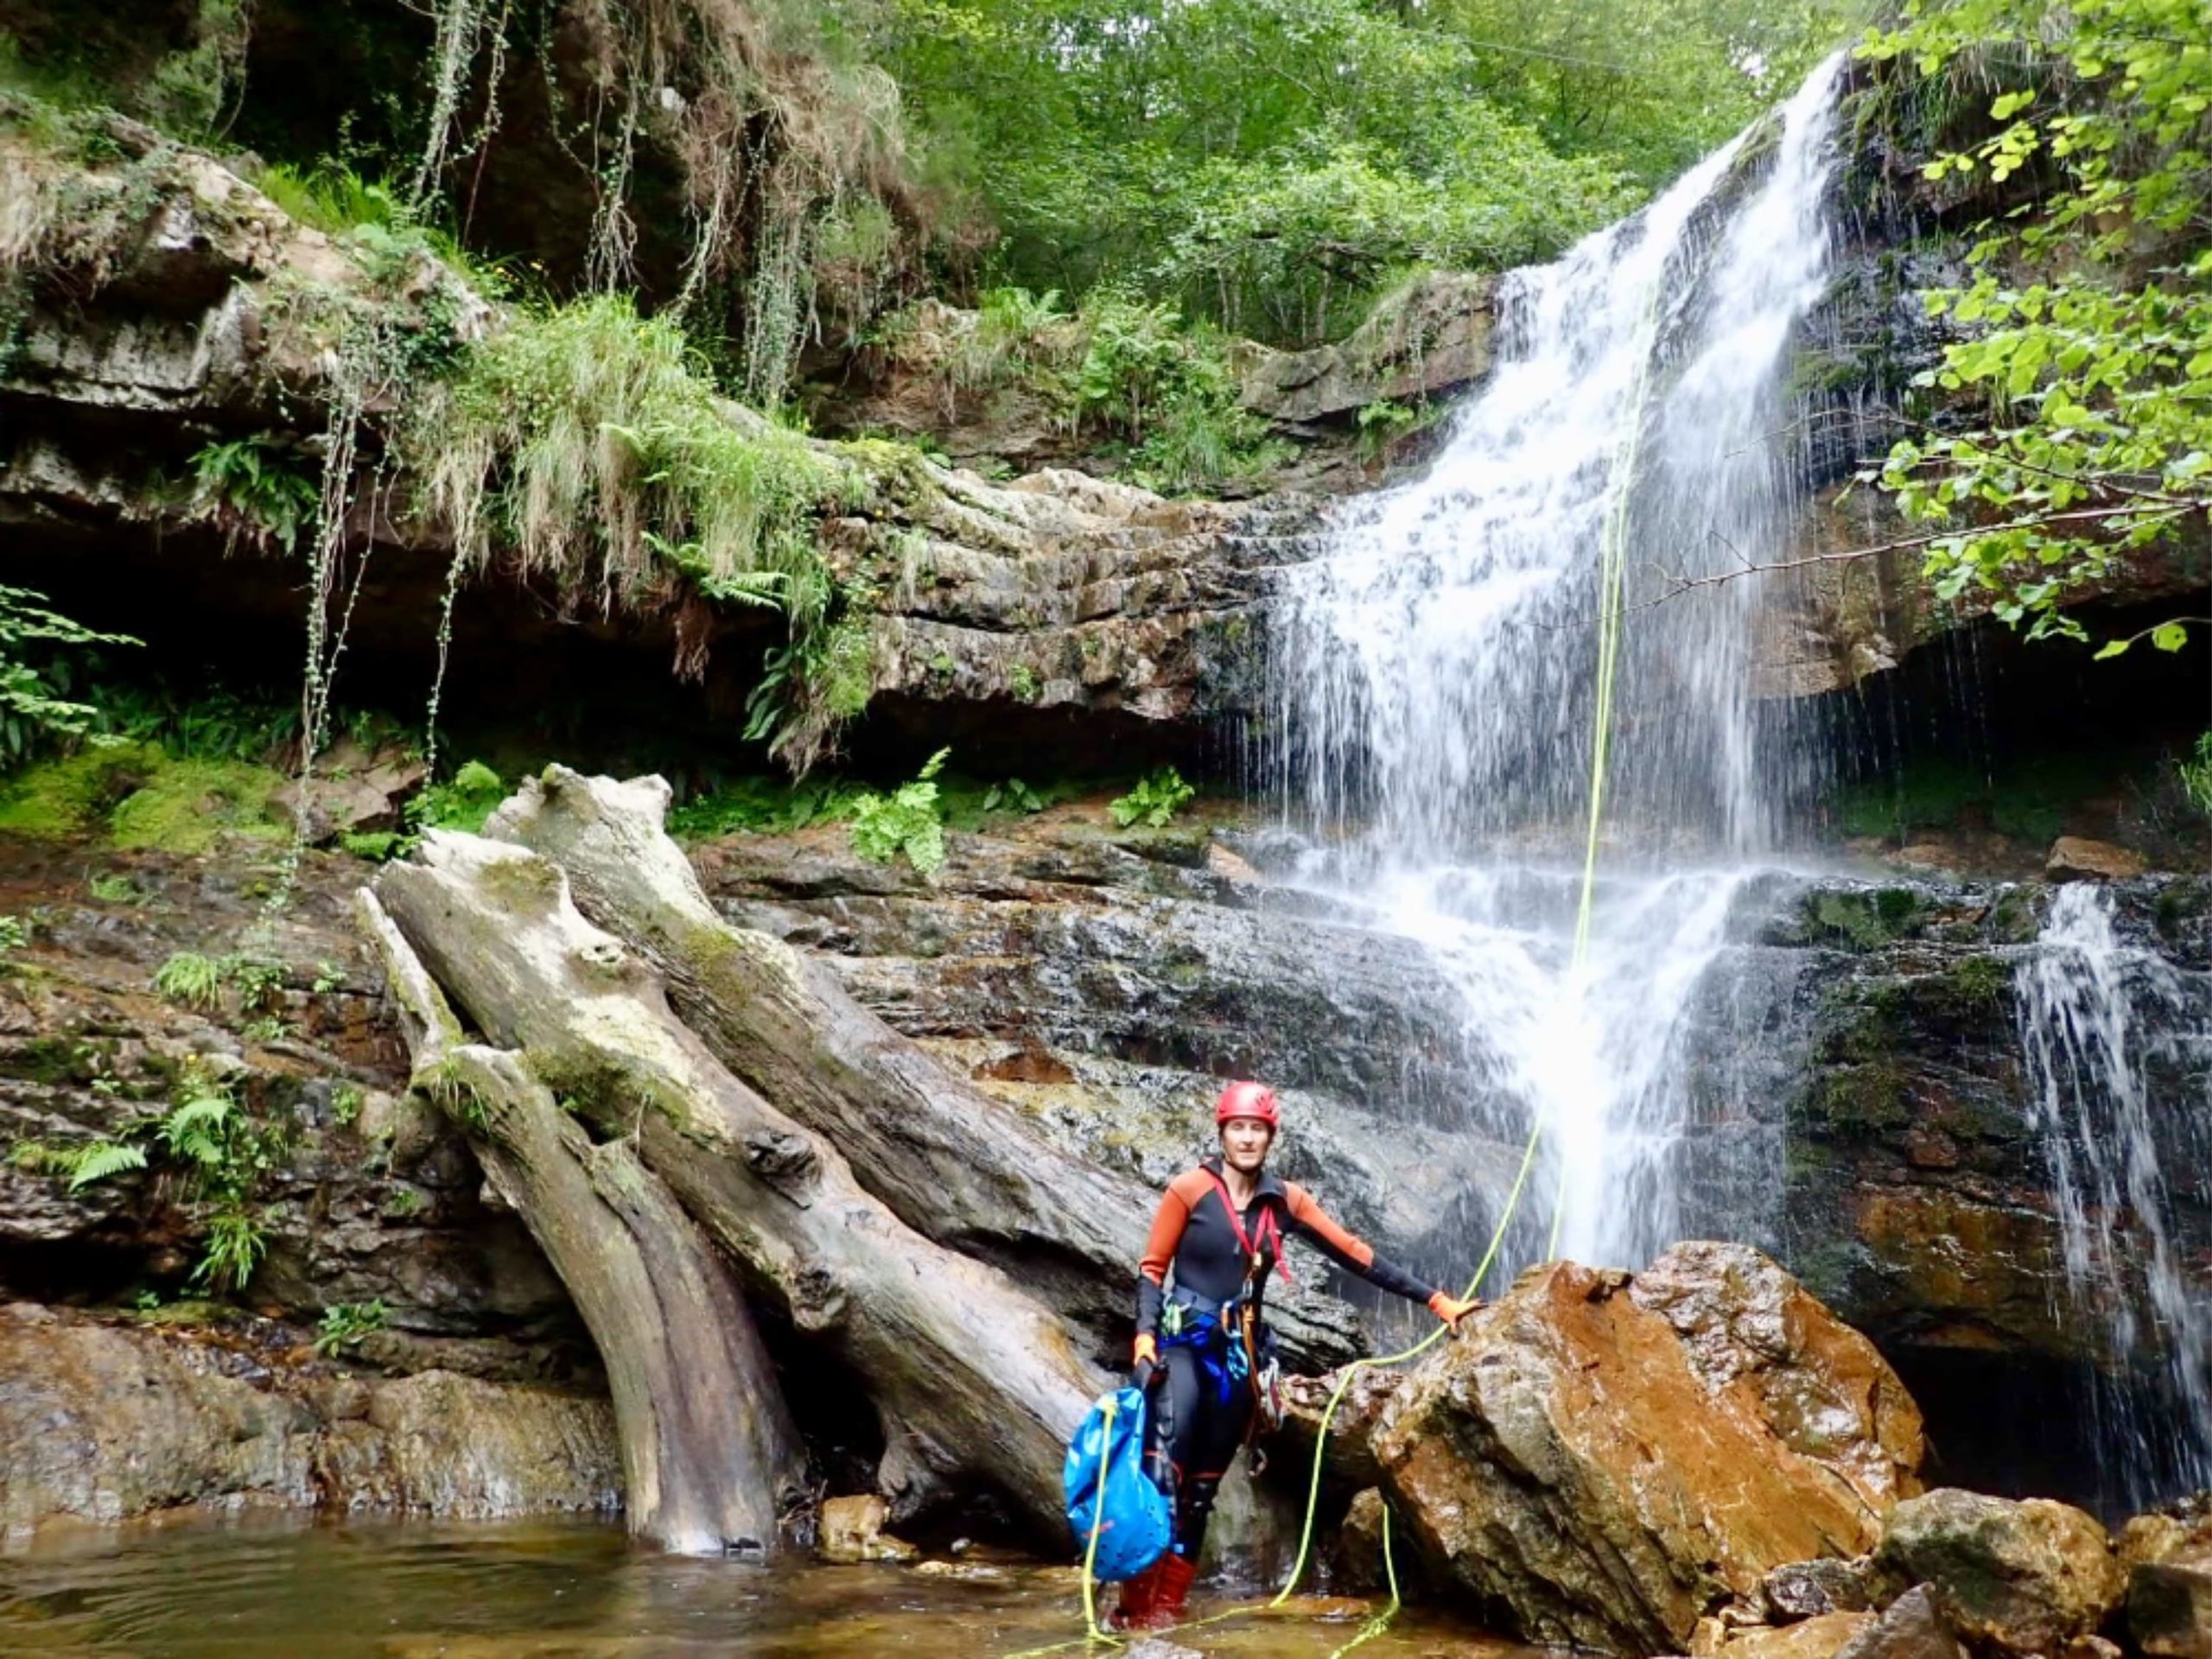 Cathy canyoning in Spain